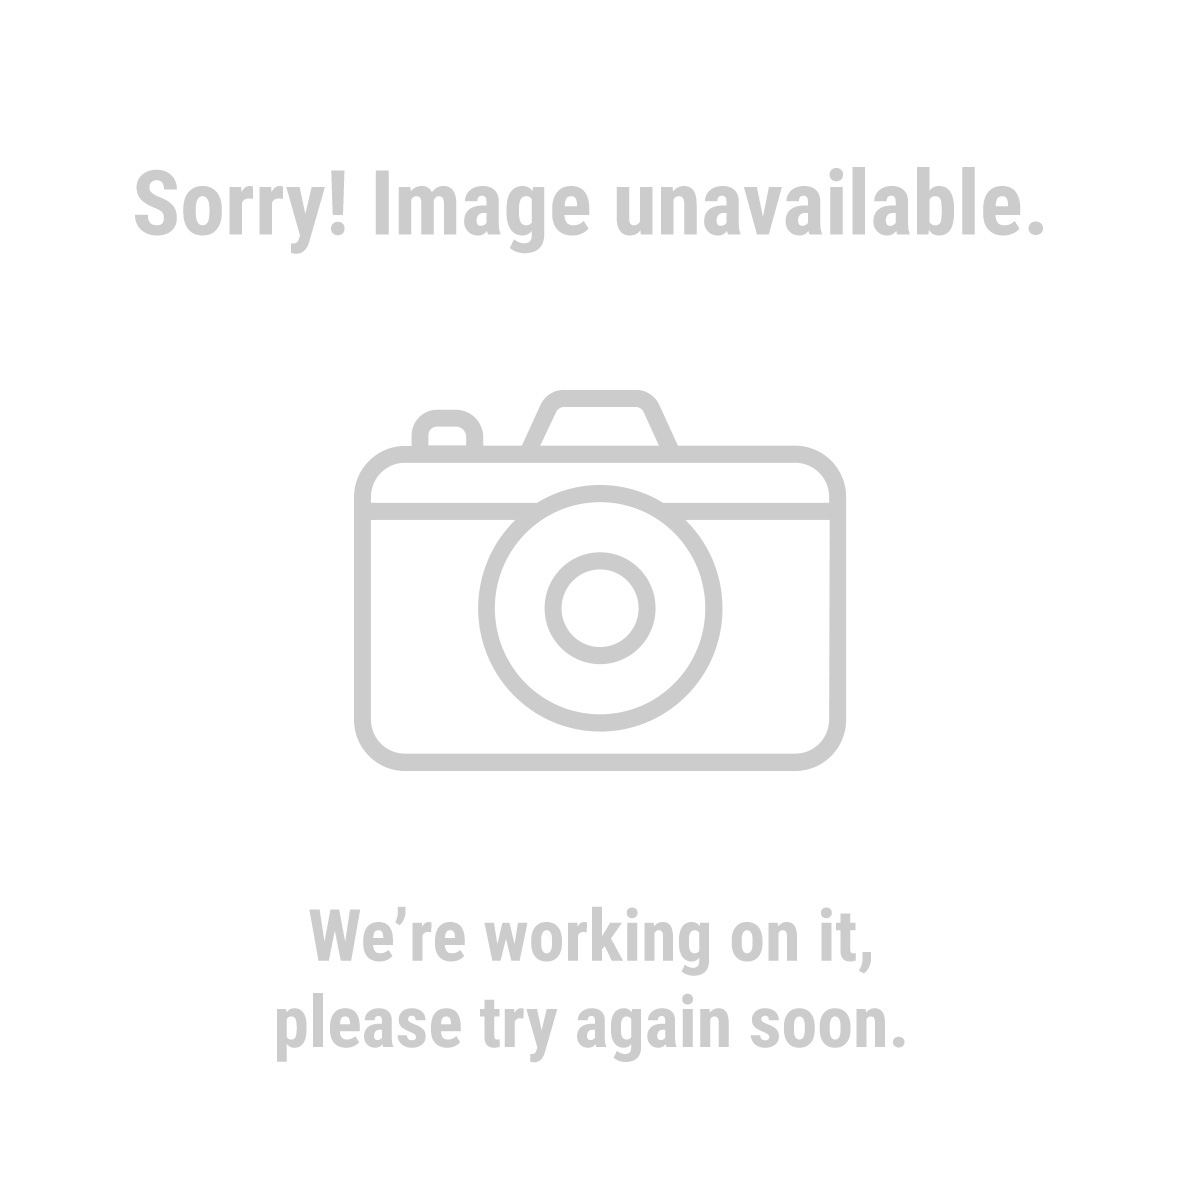 "Haul-Master 65023 1-1/4"" to 2"" Hitch Adapter"